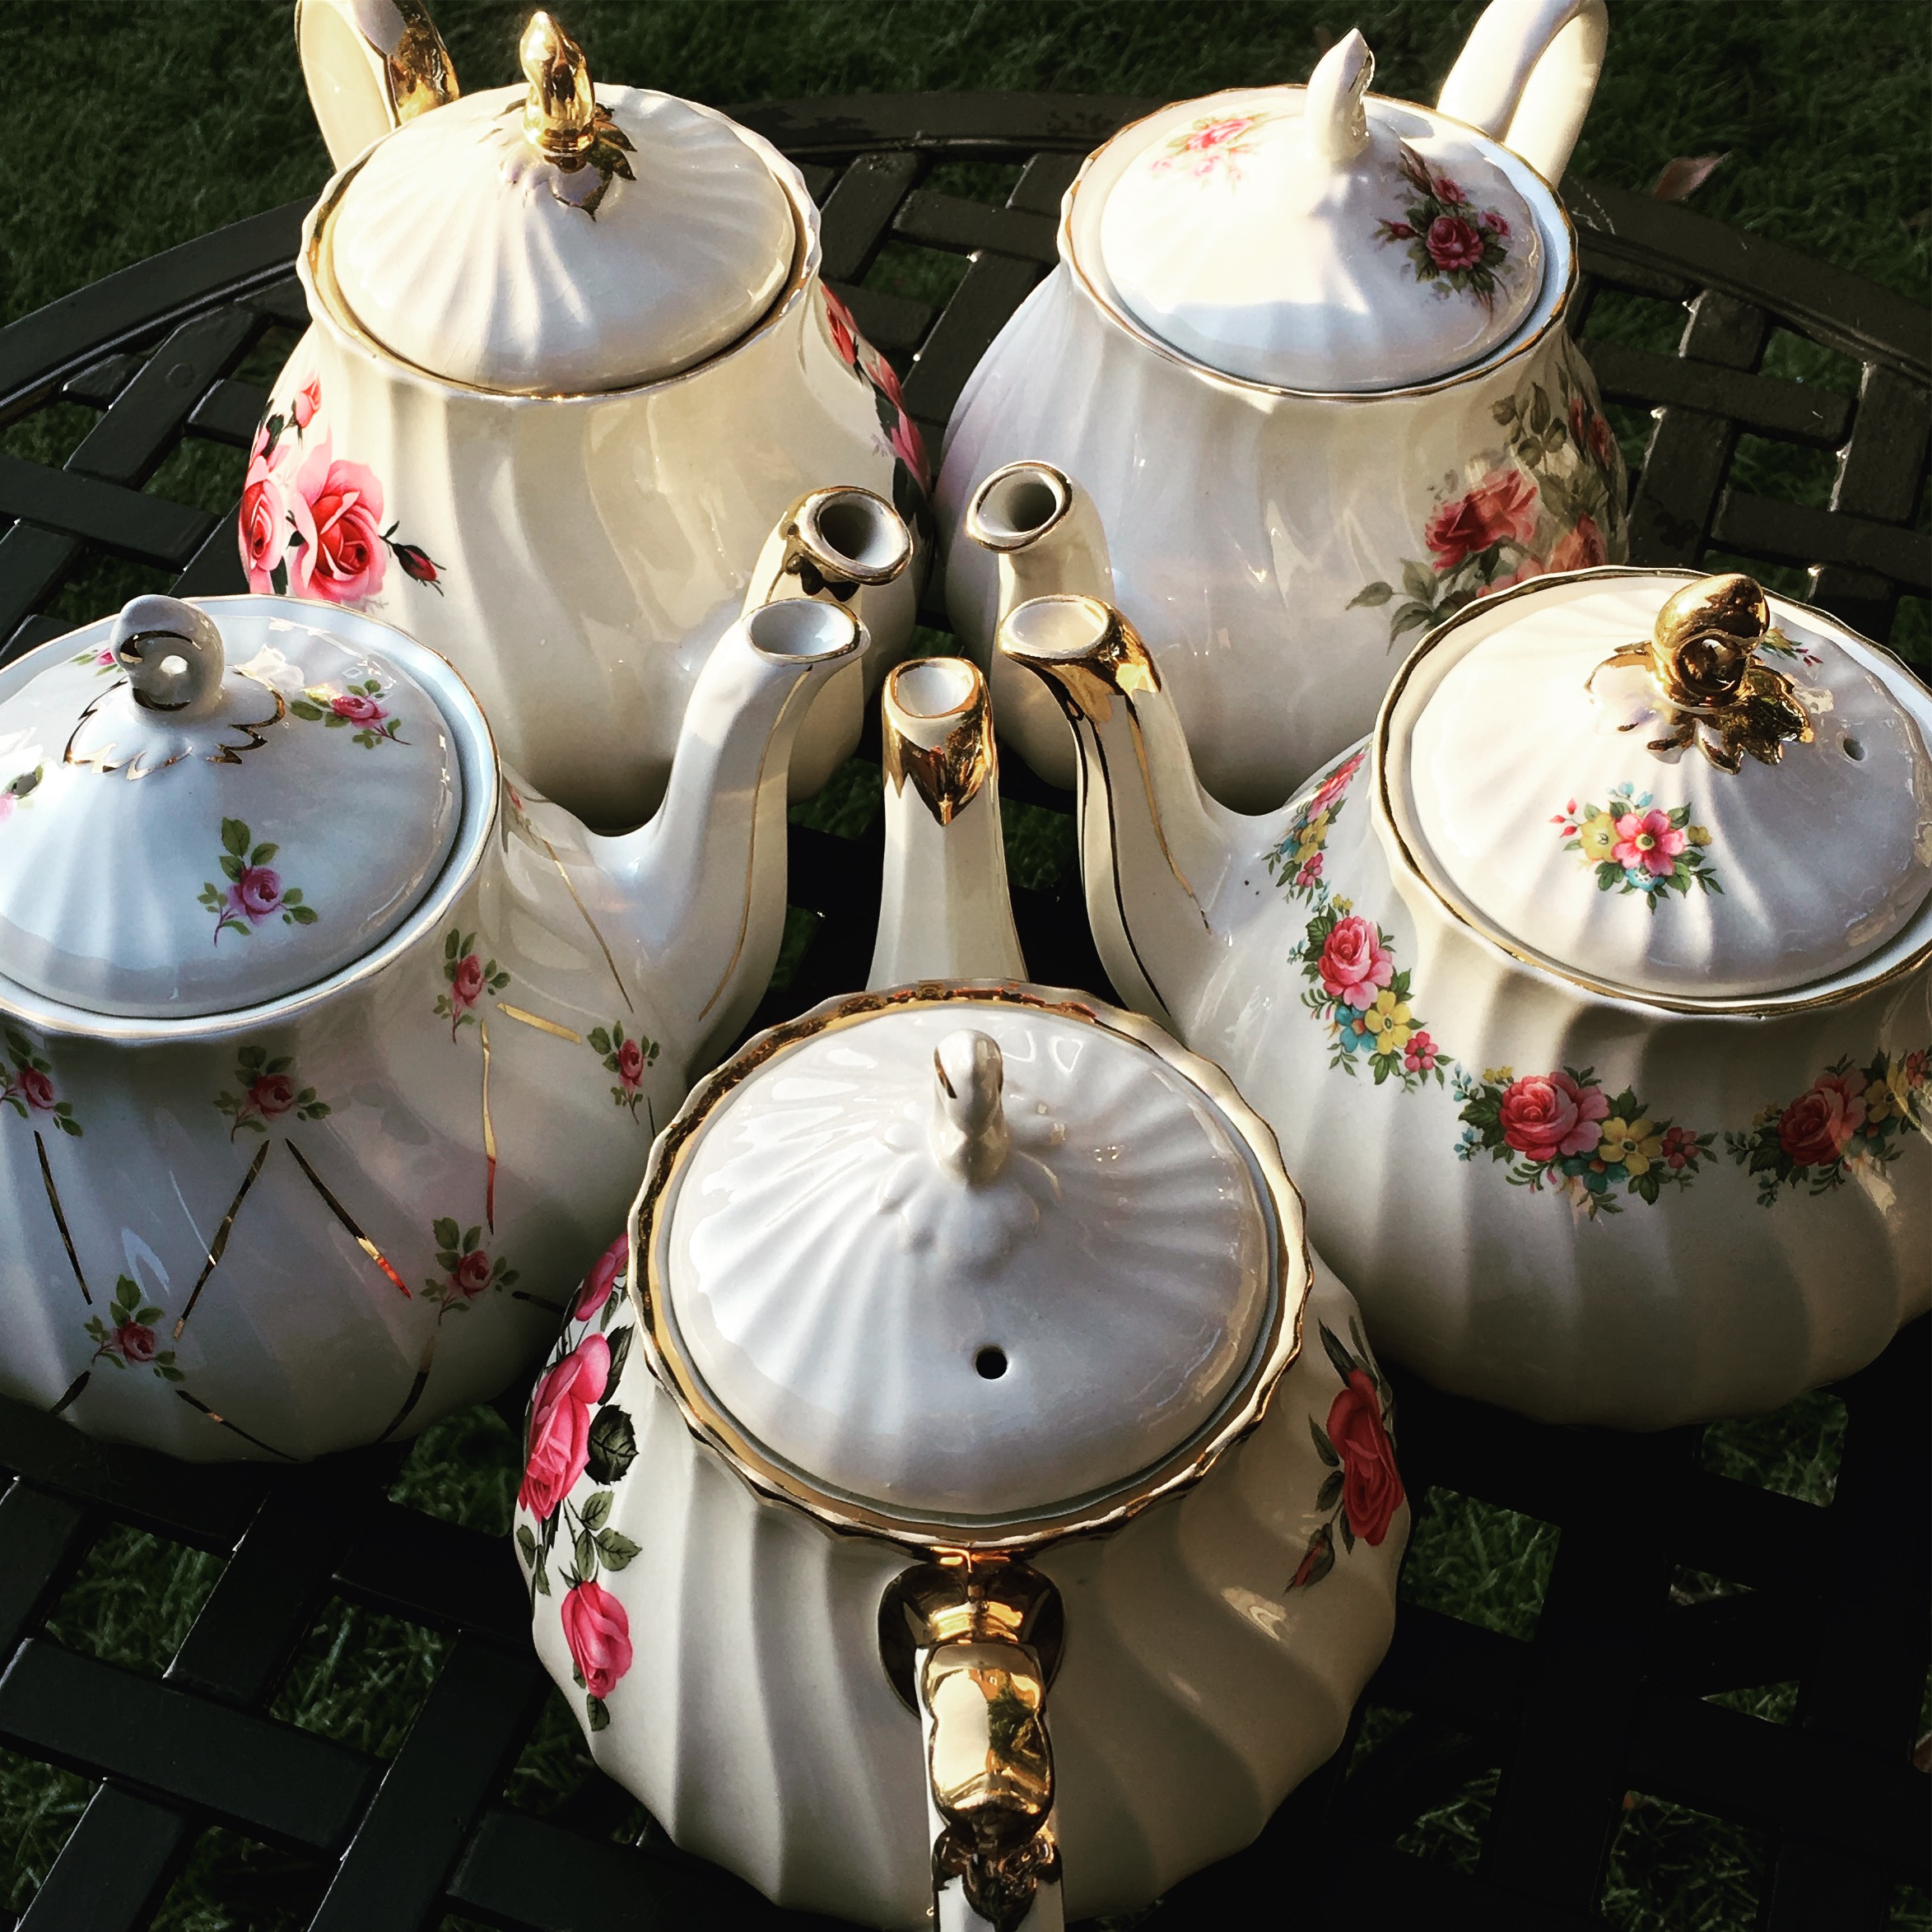 Vintage Teapots - For hire Brentwood Essex